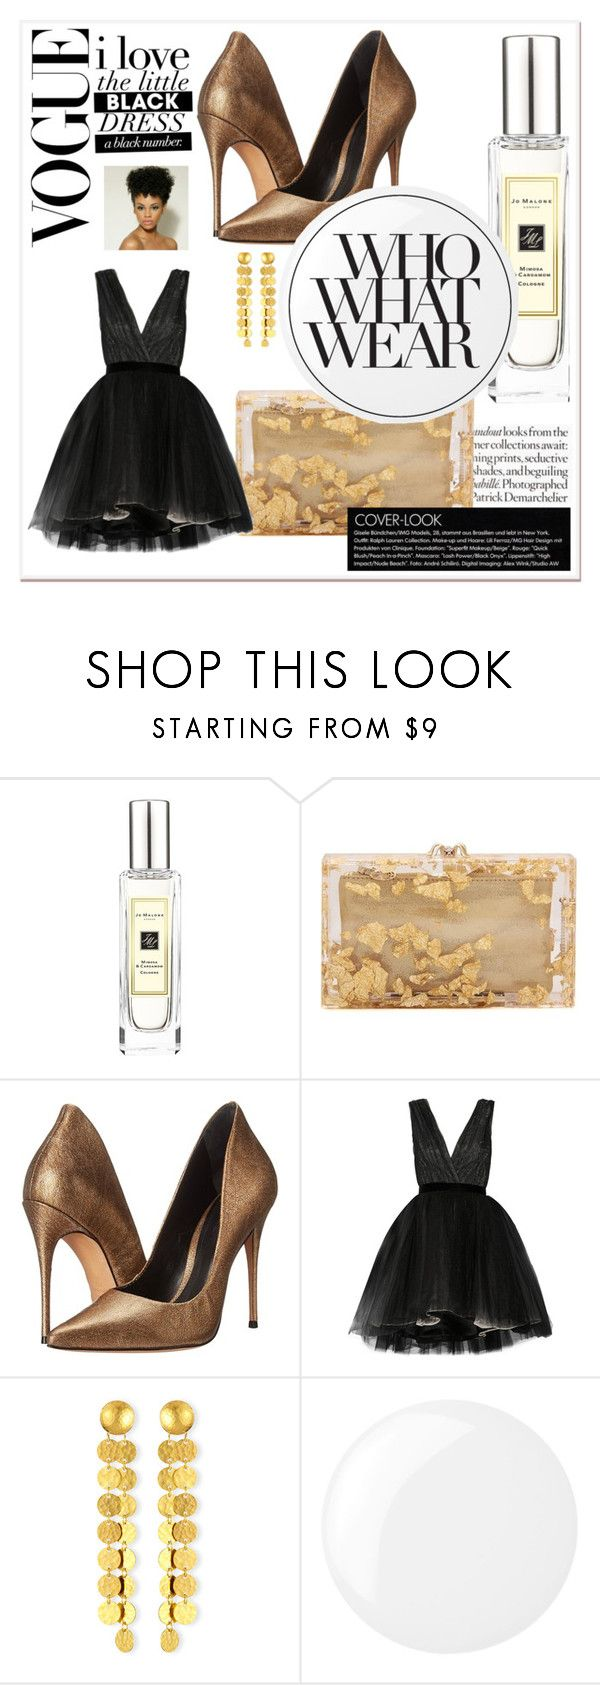 """""""BAM GLAM!"""" by jennifer-de-la-o ❤ liked on Polyvore featuring Jo Malone, Charlotte Olympia, Schutz, Alice + Olivia, Gurhan, Essie, Who What Wear, chic, gold and black"""